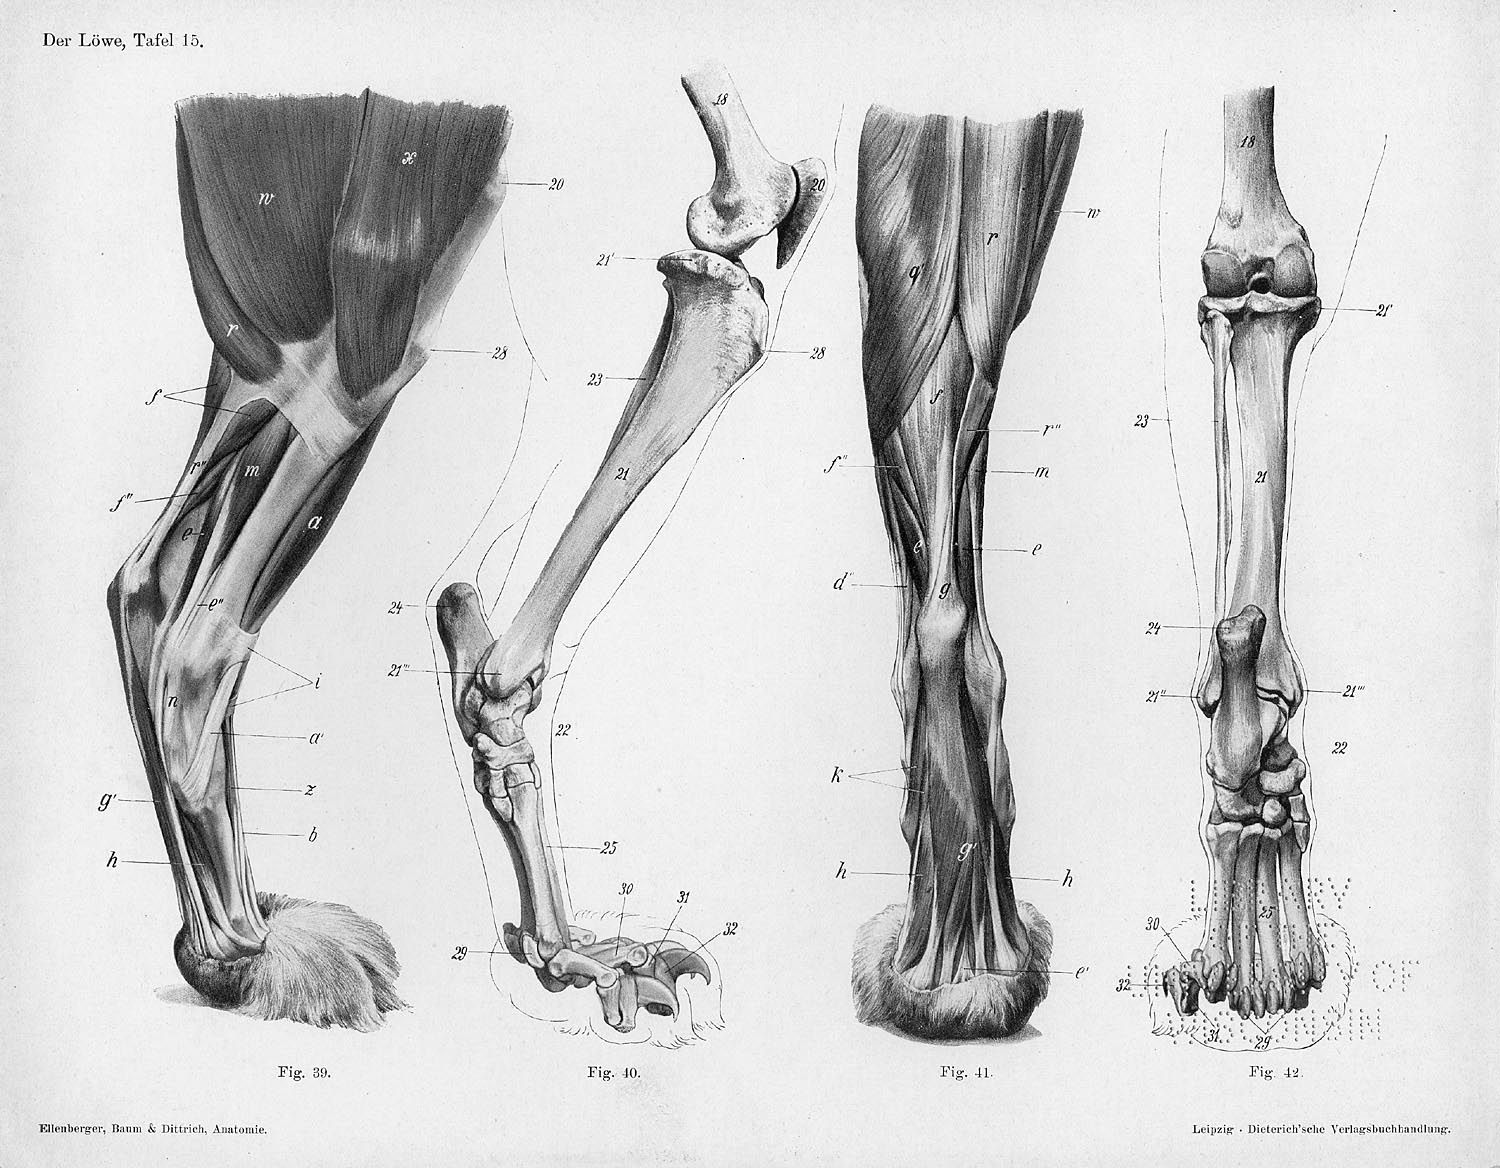 These are medial, caudal and plantar views of the